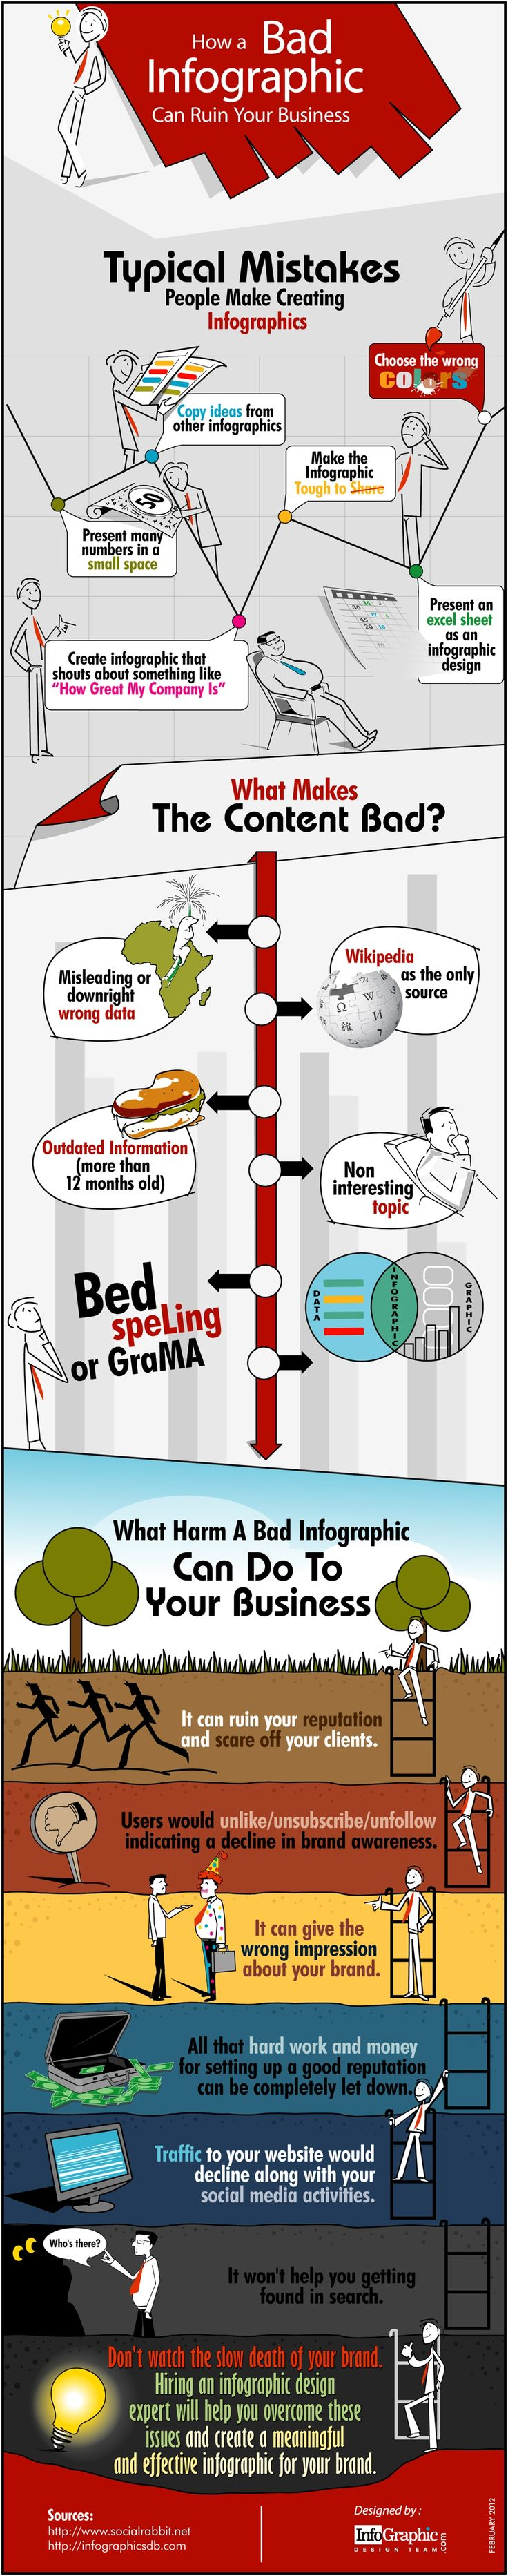 Bad infographic can hamper your business